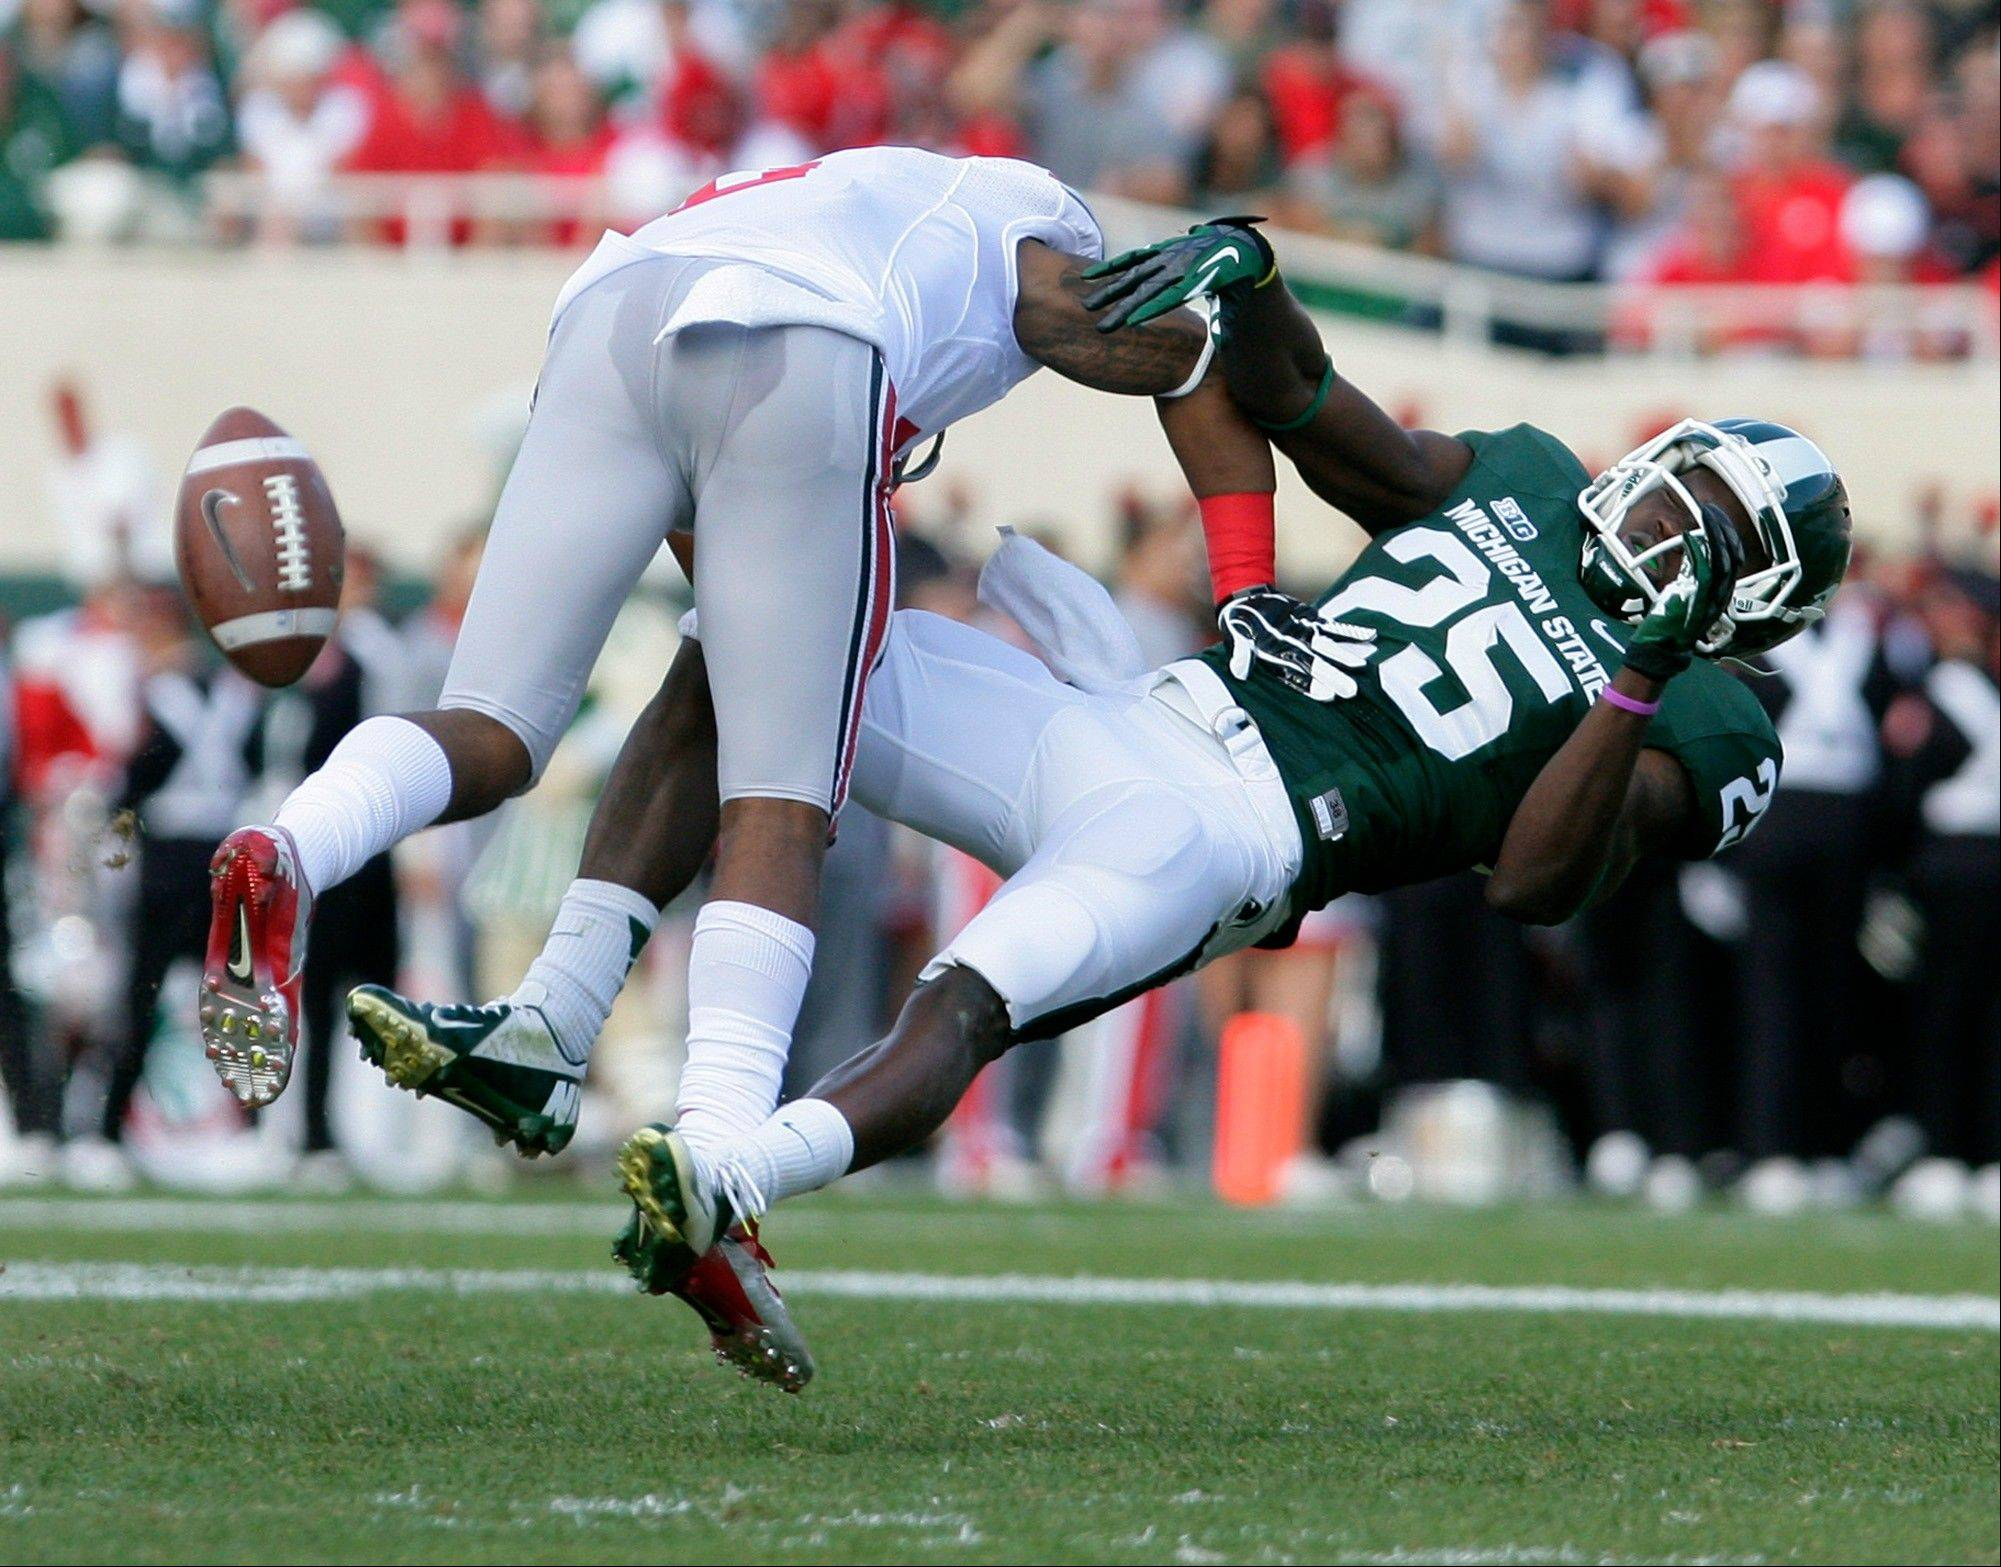 Michigan State's Keith Mumphrey is knocked off his feet by Ohio State's Rod Smith after missing a pass Saturday during the second quarter.